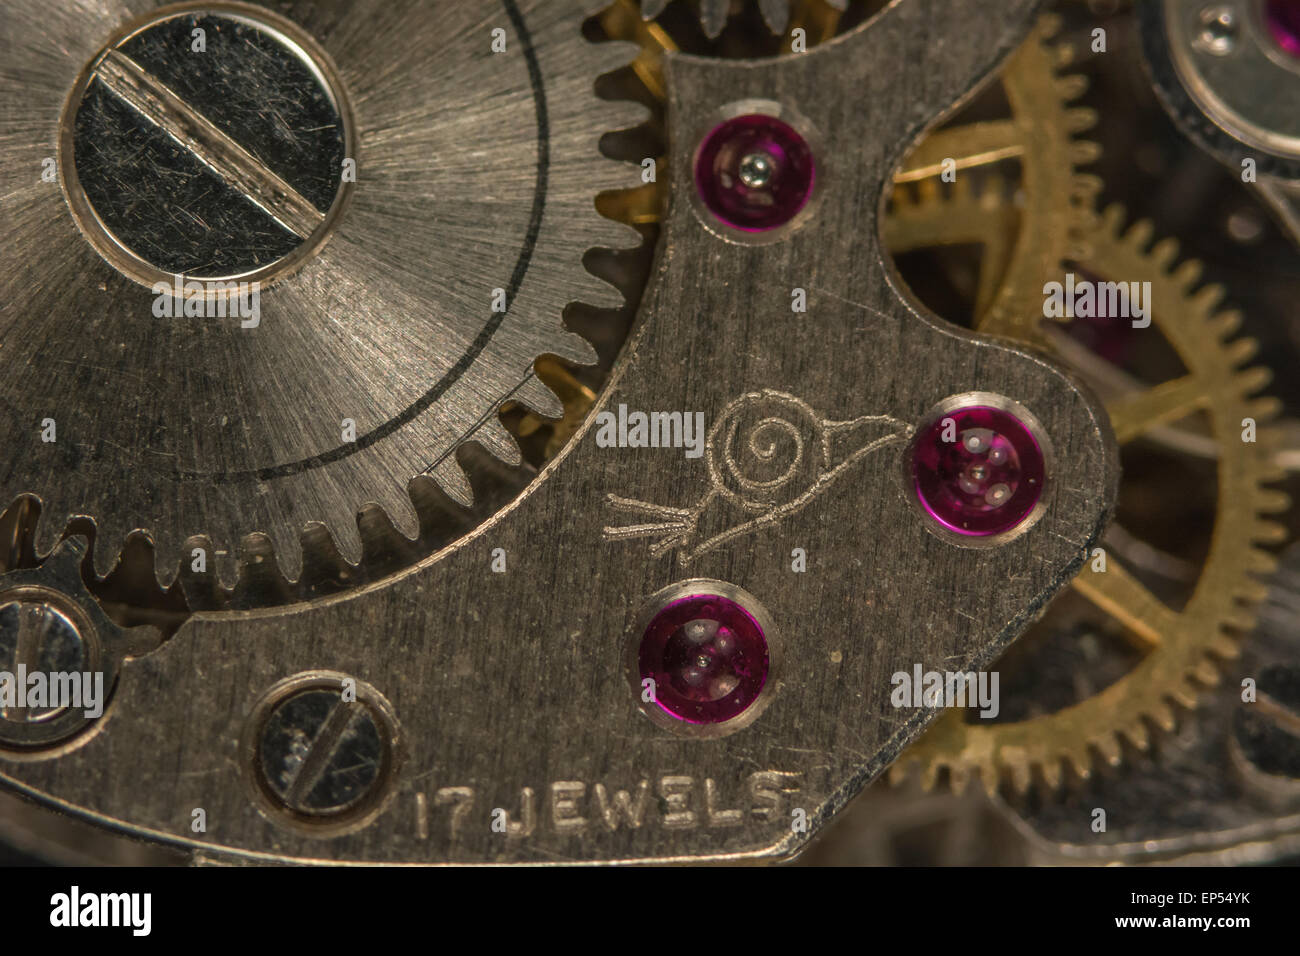 Macro-photo of wristwatch mechanism. Key focus on right hand teeth of steel cog to left half of picture, and snail - Stock Image